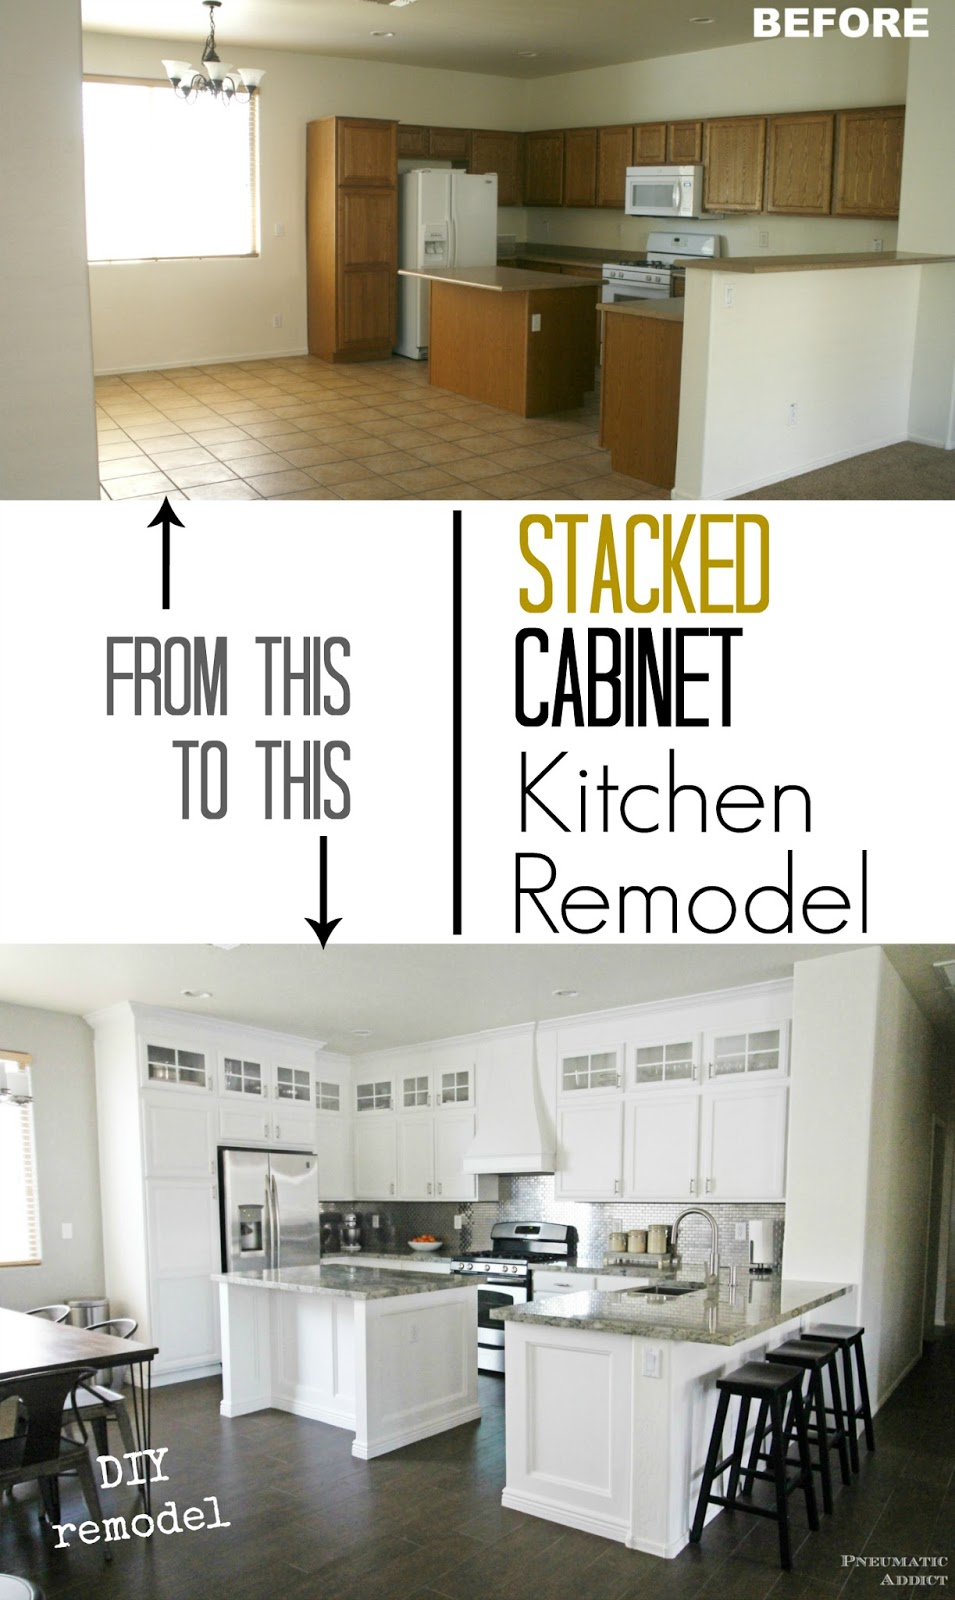 Stacked Cabinet Kitchen Makeover | Pneumatic Addict on diy home gardening, diy ice dam removal, diy home drywall, diy pest control, diy home repair, diy home media rooms, diy home crafts, diy home decor, diy home foundations, diy home photography, diy garden, diy home building, diy home plumbing, diy home business, diy kitchen backsplash, diy home designing, diy home equipment, diy home windows, diy home entertainment, diy home handyman,